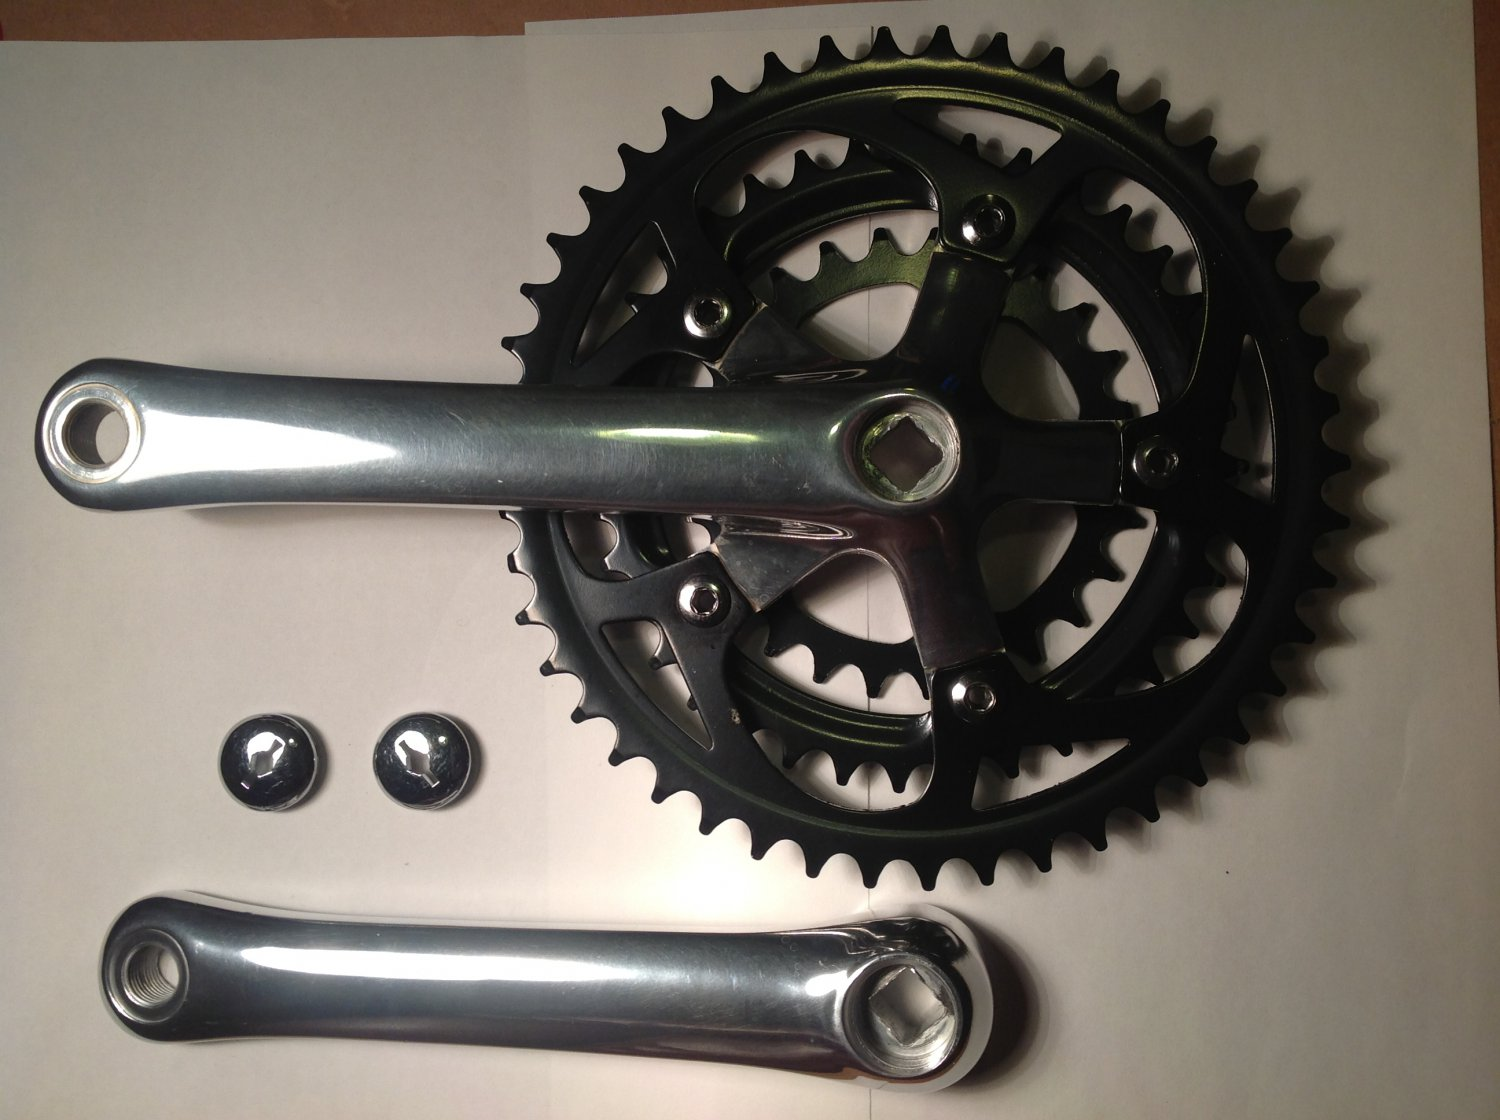 Triple Cotterless Crank Set for 3-piece cranks.  26 - 36 - 46 teeth.  Right and left arms